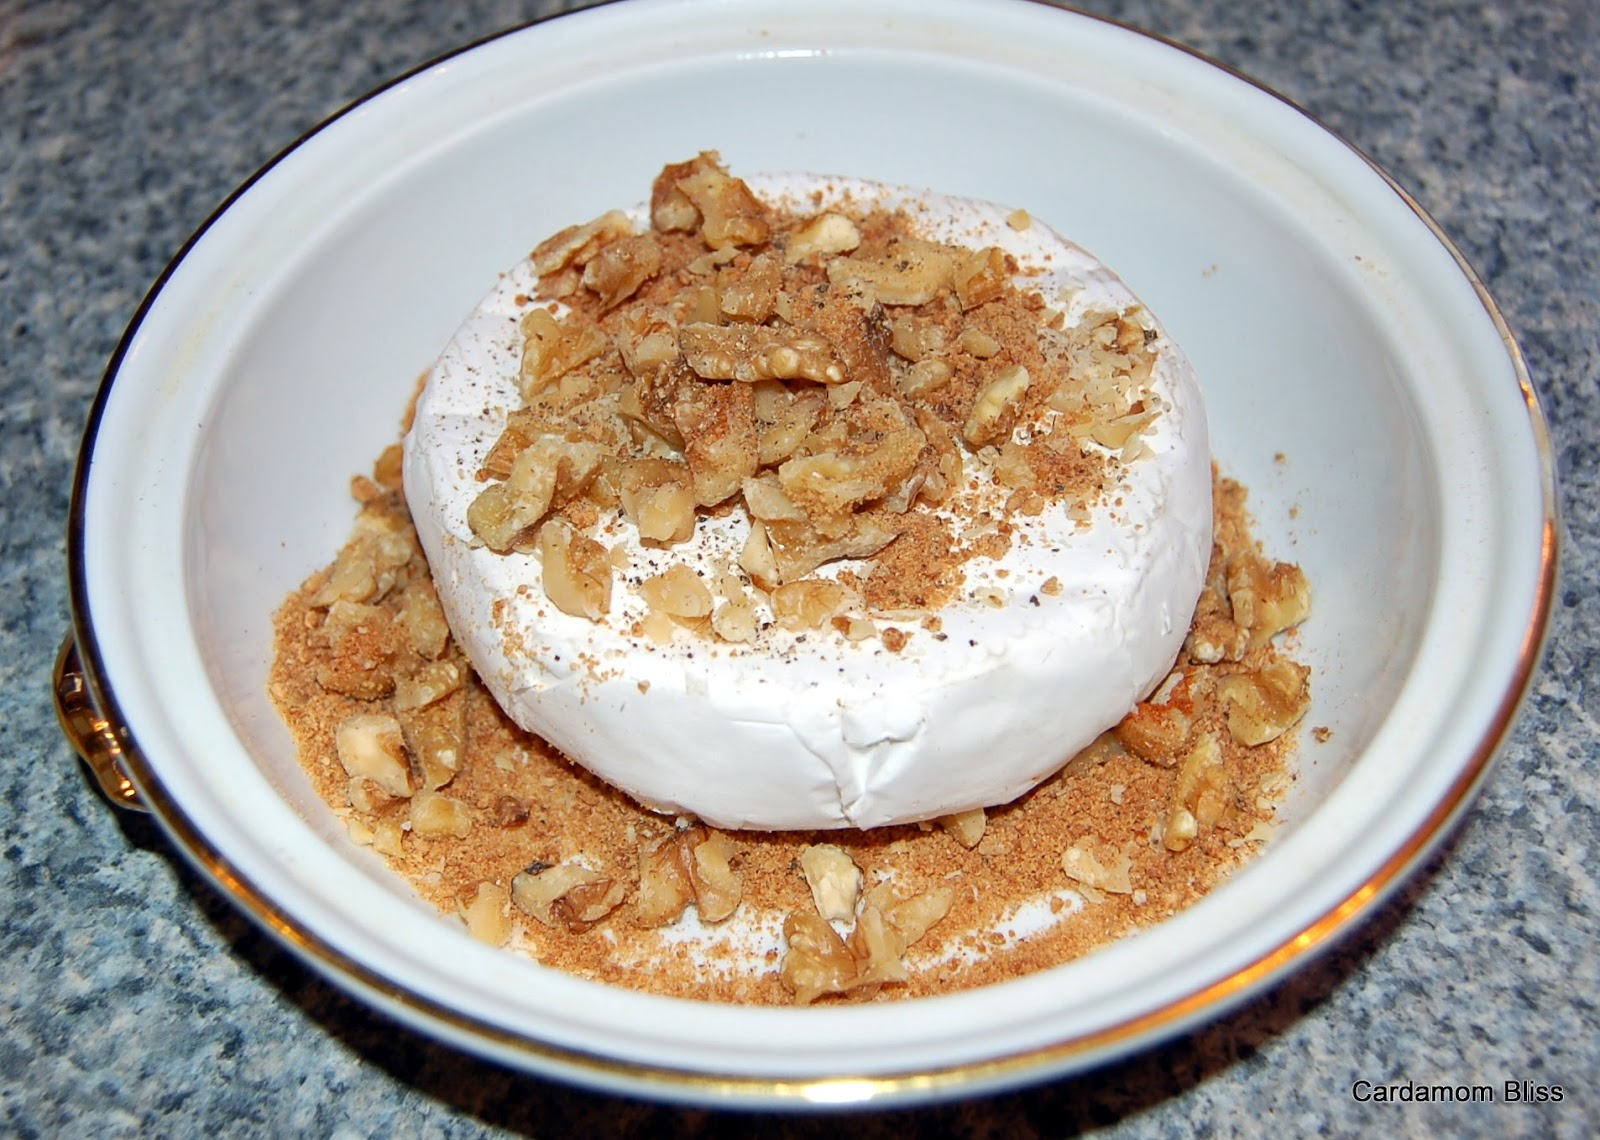 Baked Camembert with Jaggery and Walnuts